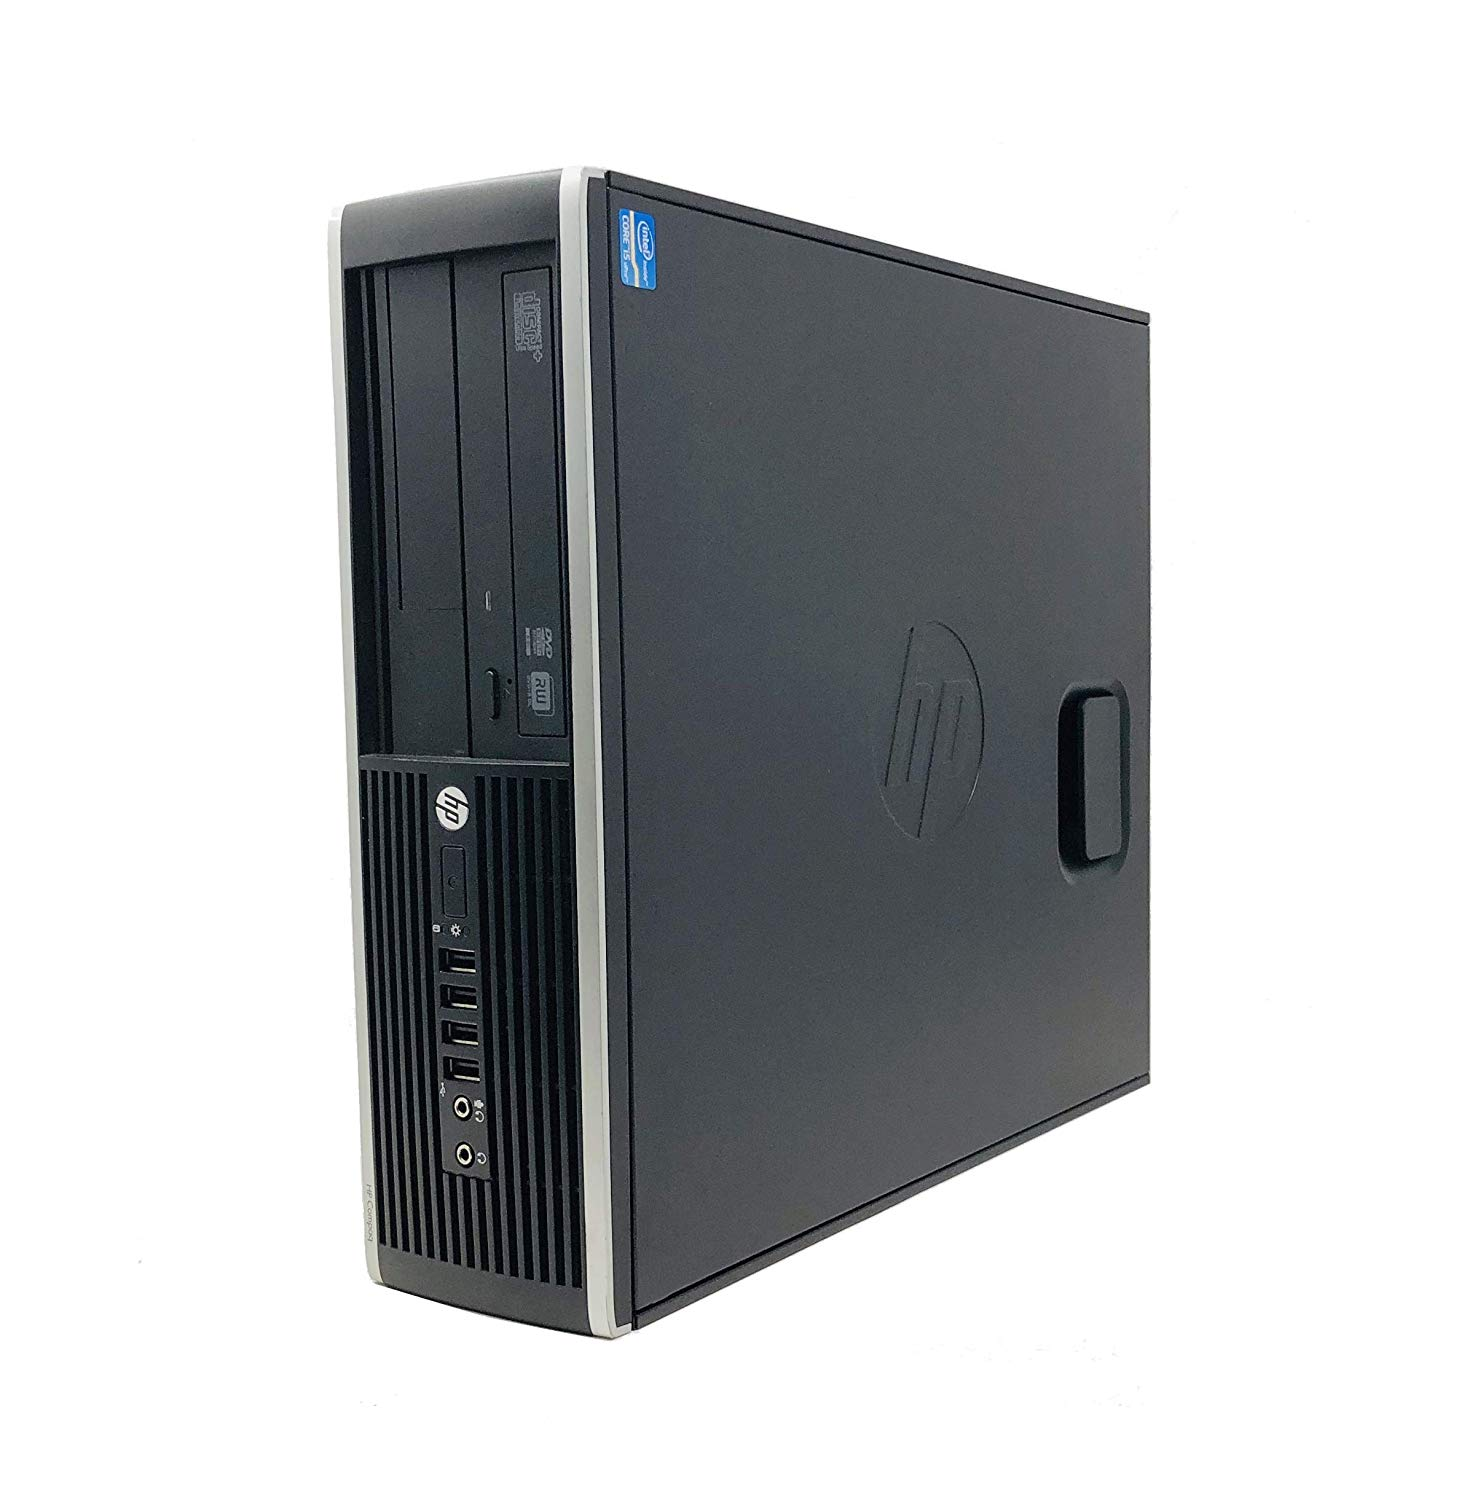 Hp Elite 8200 - Ordenador de sobremesa (<font><b>Intel</b></font> <font><b>i5</b></font>-<font><b>2400</b></font>,Lector, 8GB de RAM, Disco HDD de 250GB , Windows 7 PRO )(Reacondicionado) image